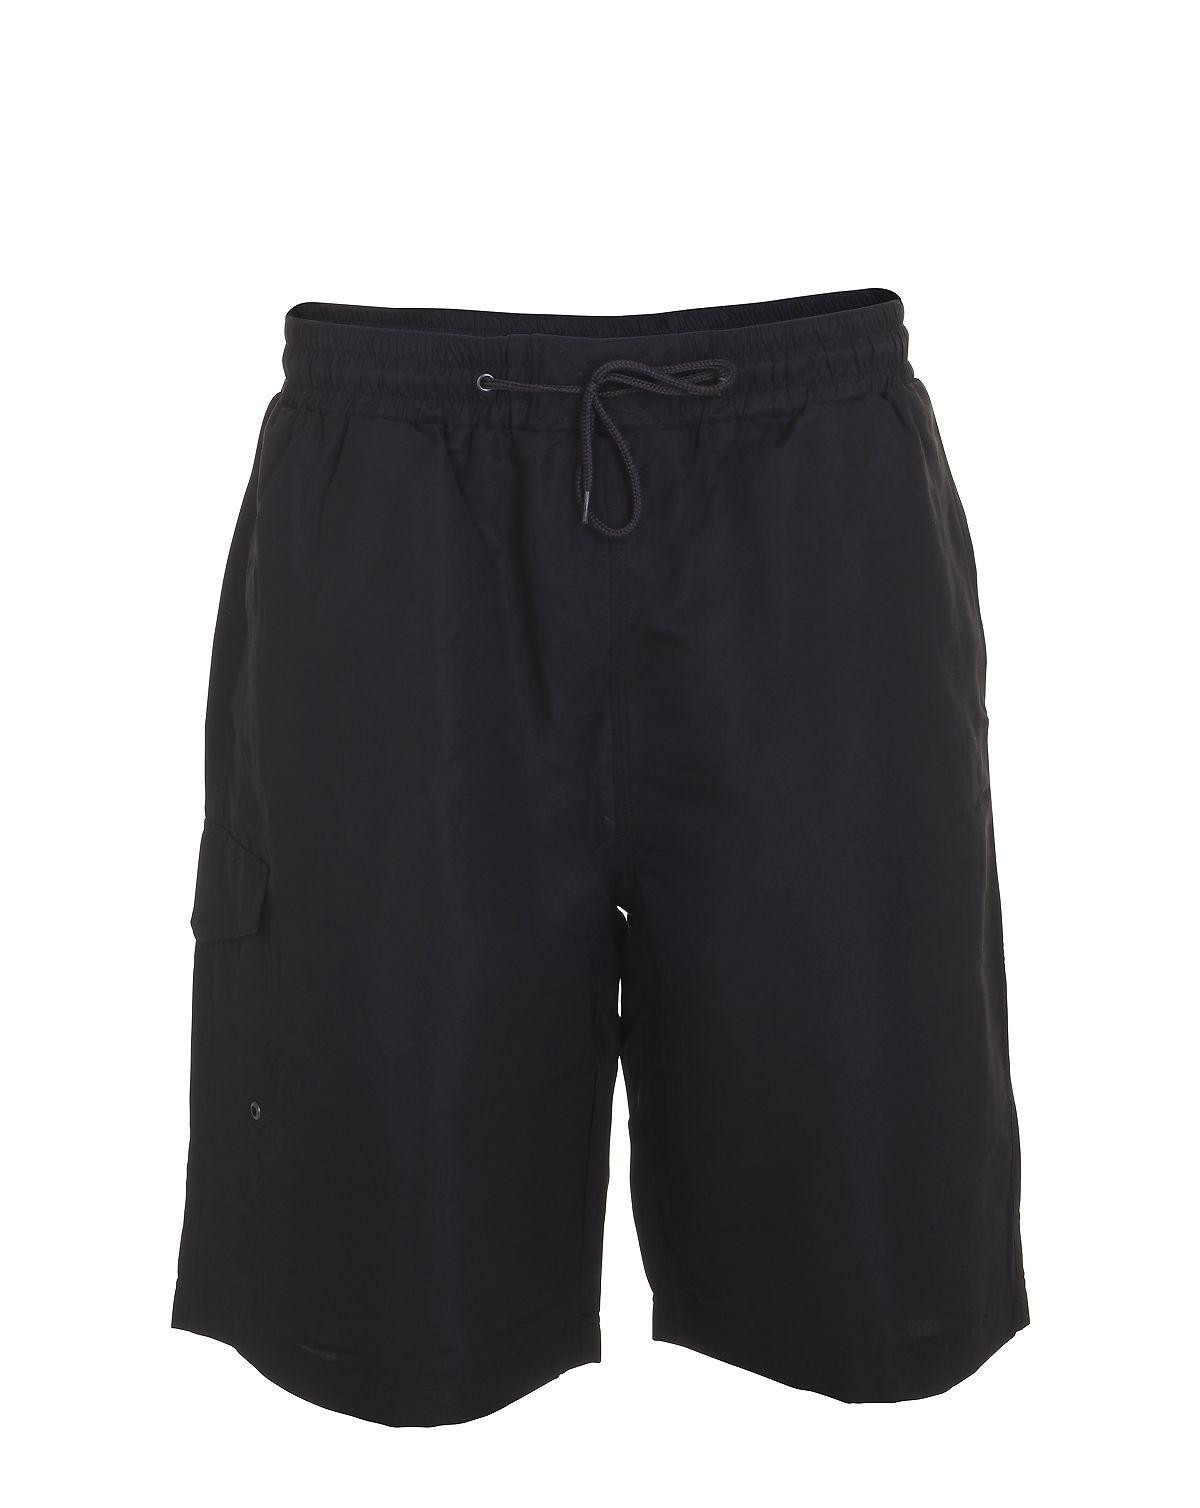 Image of   Brandit Badeshorts (Sort, L/XL)